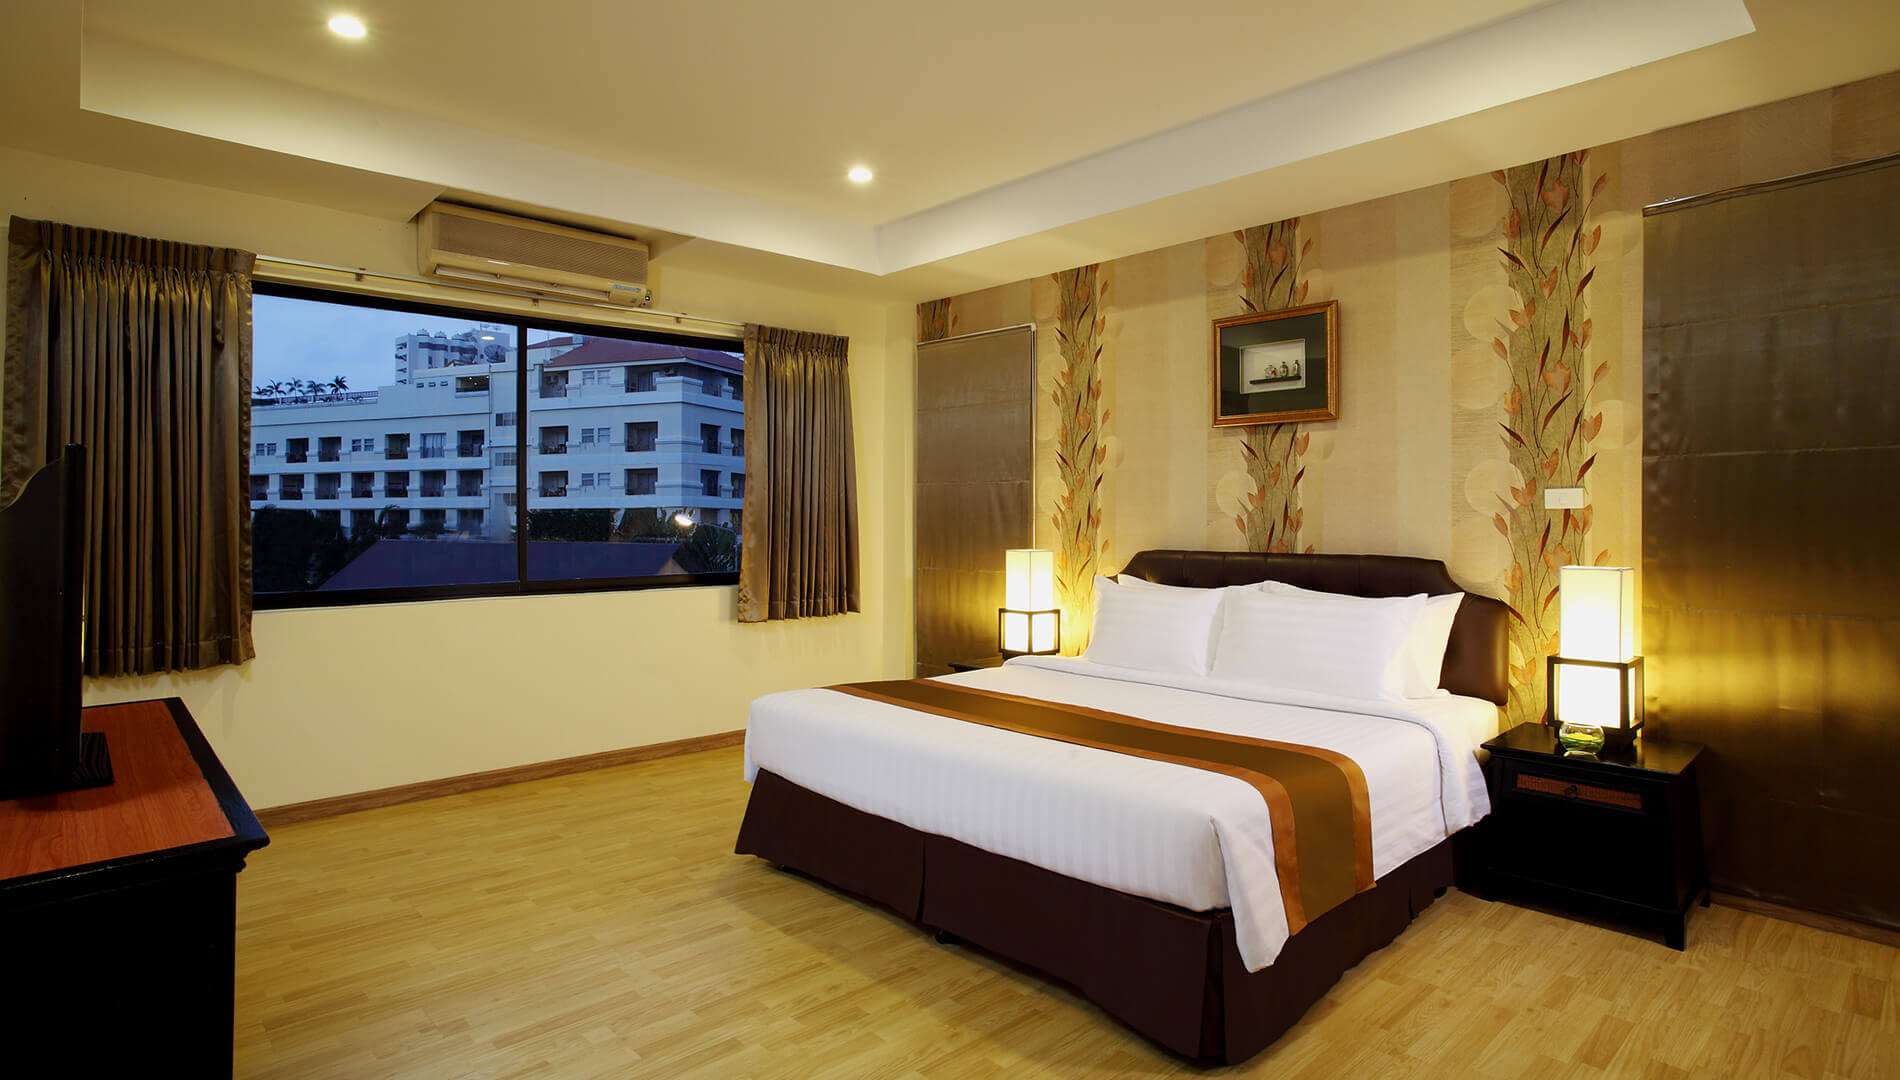 Best ideas about Hotels With Two Bedroom Suites . Save or Pin Two Bedroom Suite Nova Park Hotel Pattaya Now.